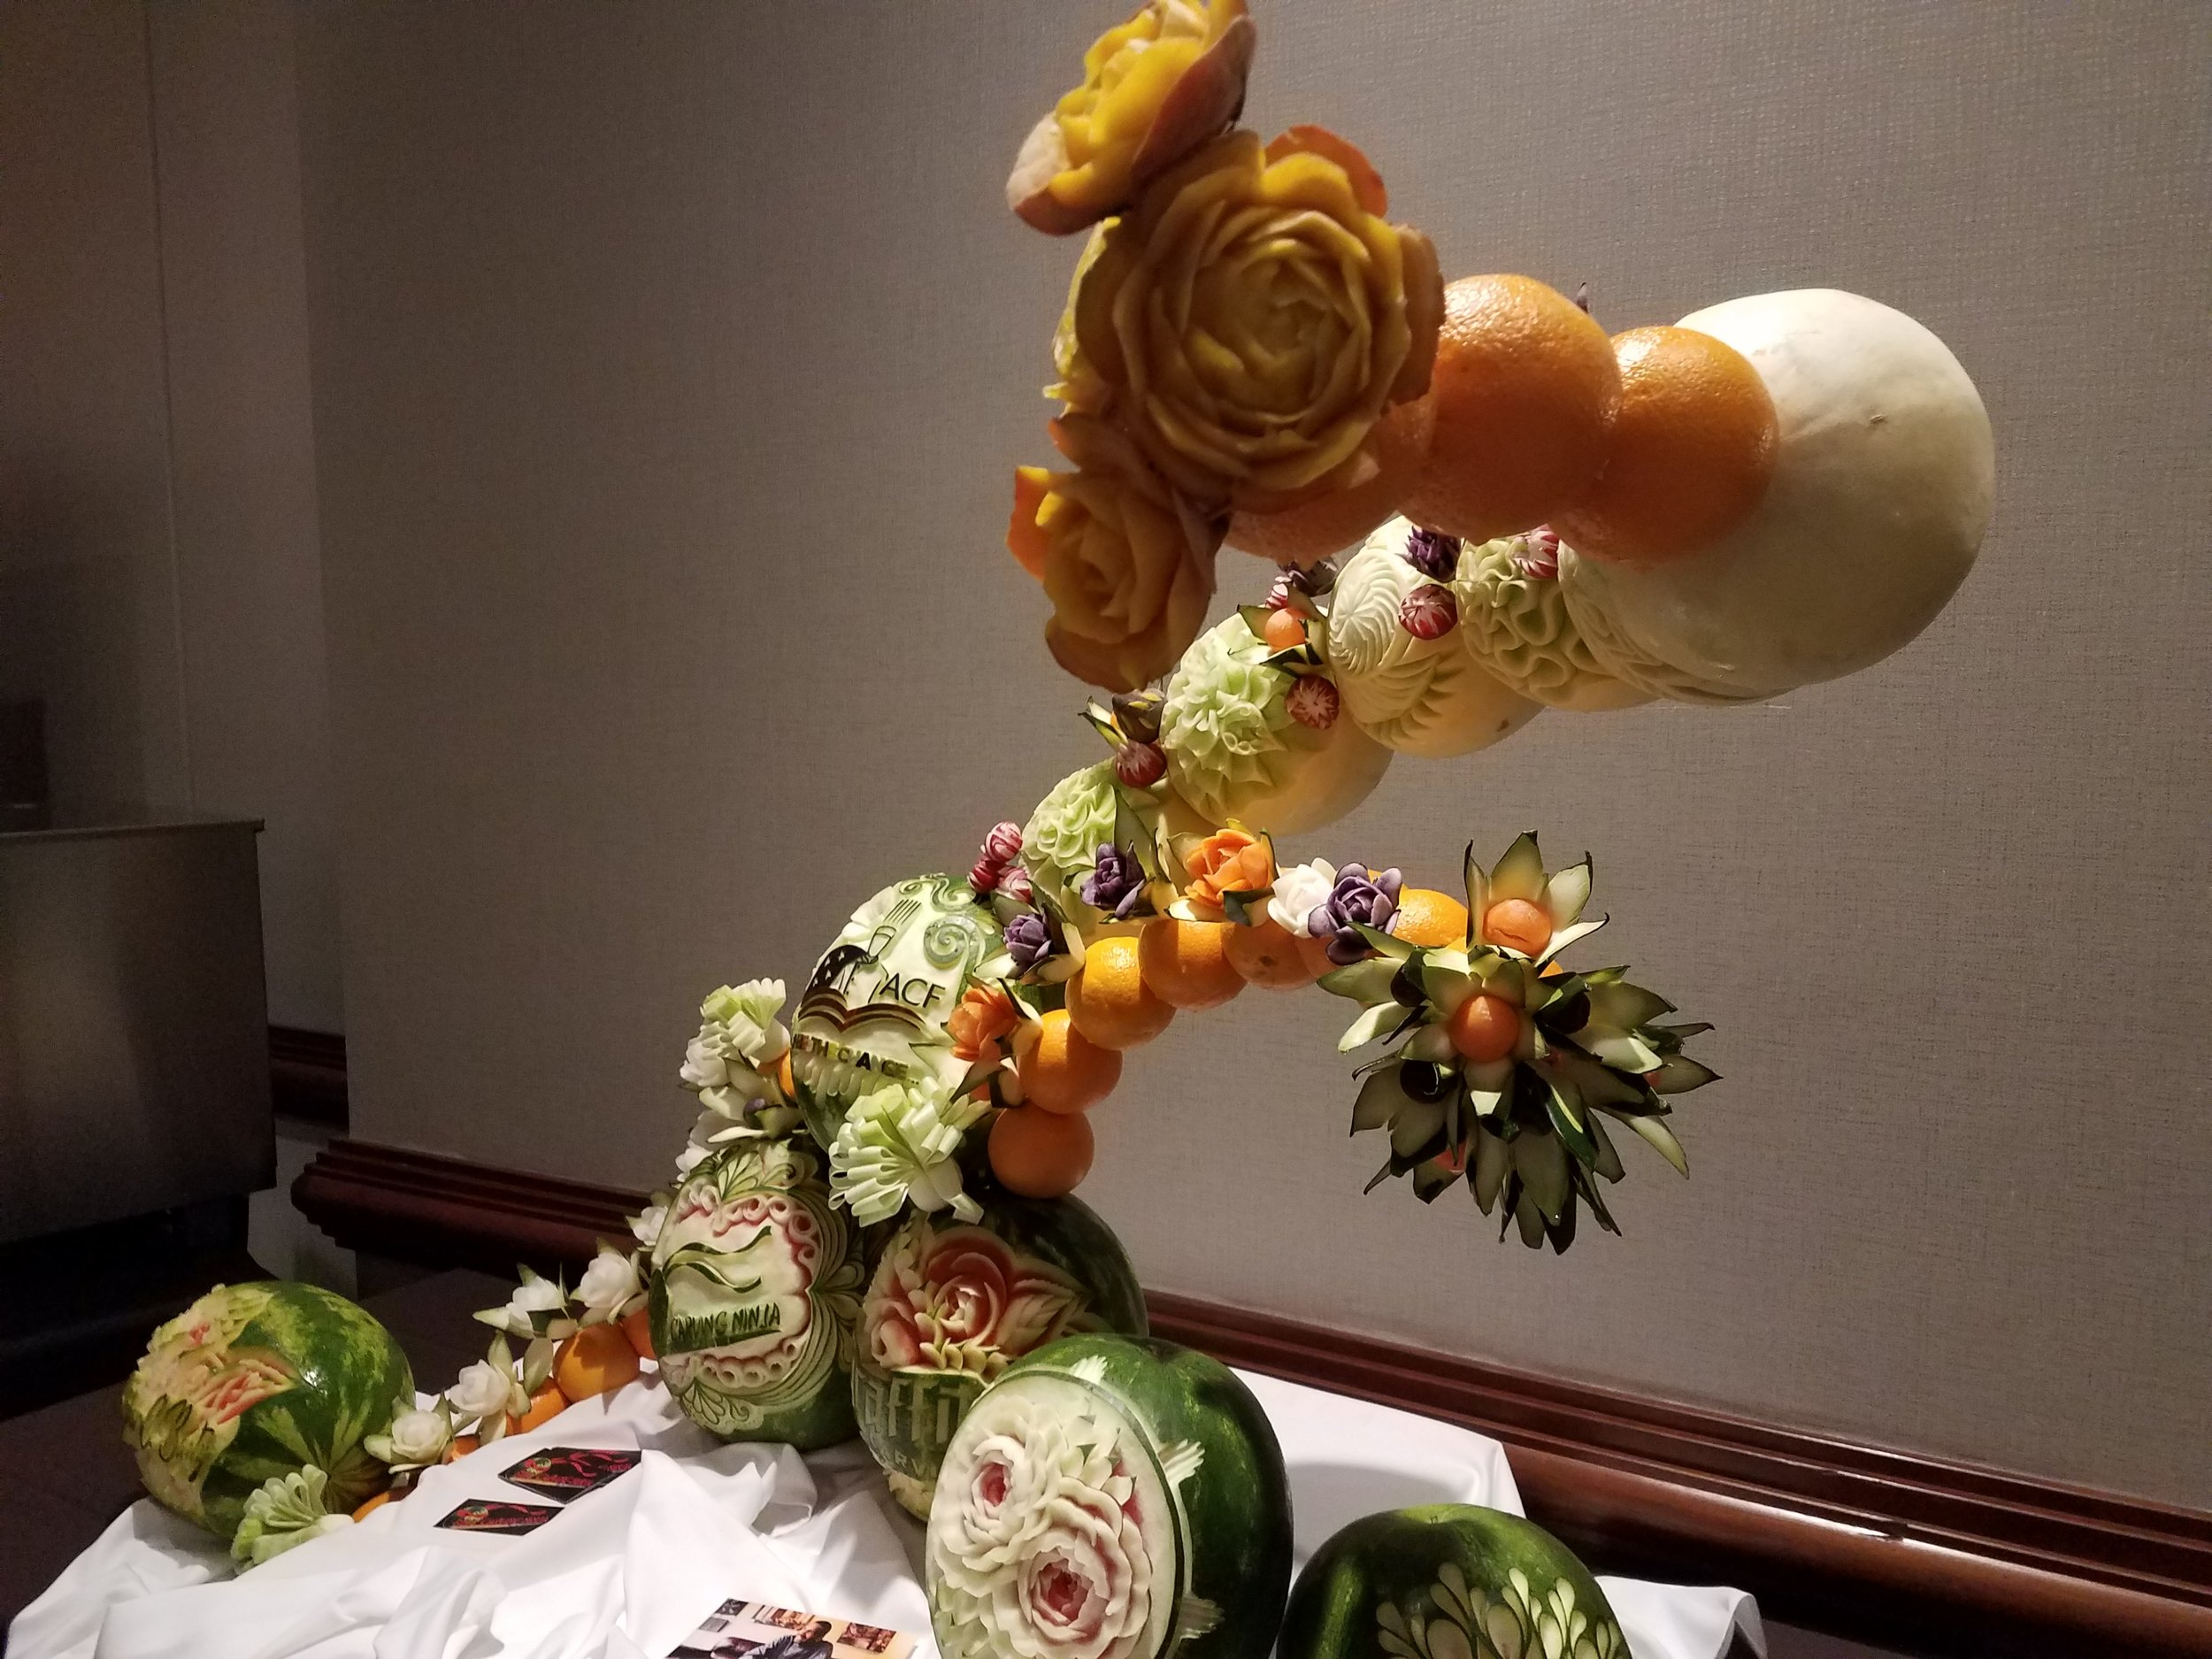 Fruit Carving from the Welcome Reception at Chef Connect